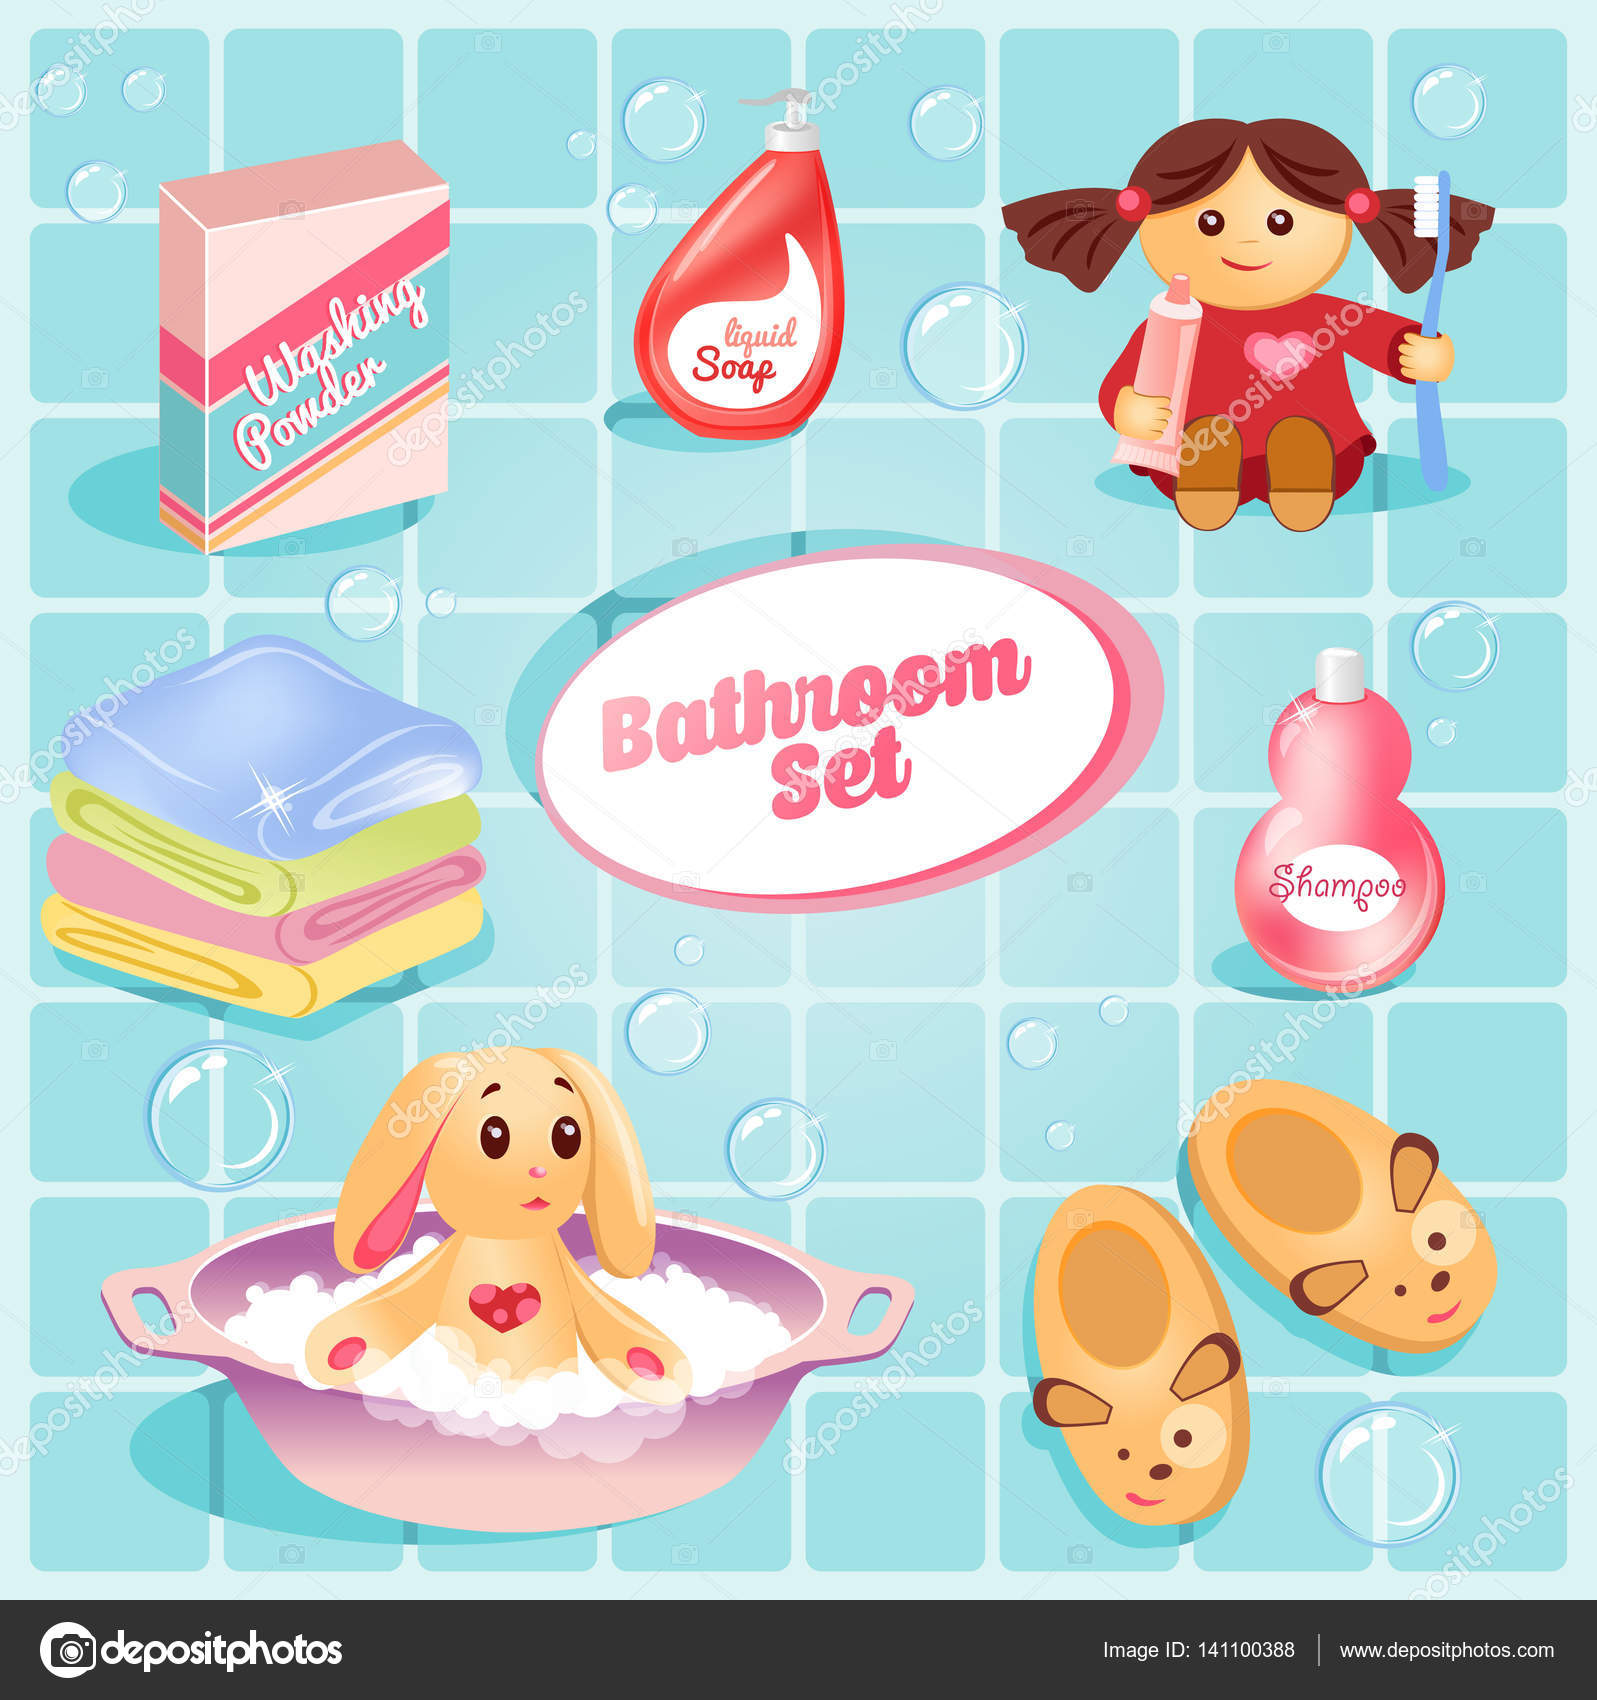 Bathroom sets for kids - Cute Bathroom Set For Kids Toy Rabbit In The Pelvis Shampoo Soap Towels Baby Doll With A Toothbrush And Toothpaste Slippers Vector